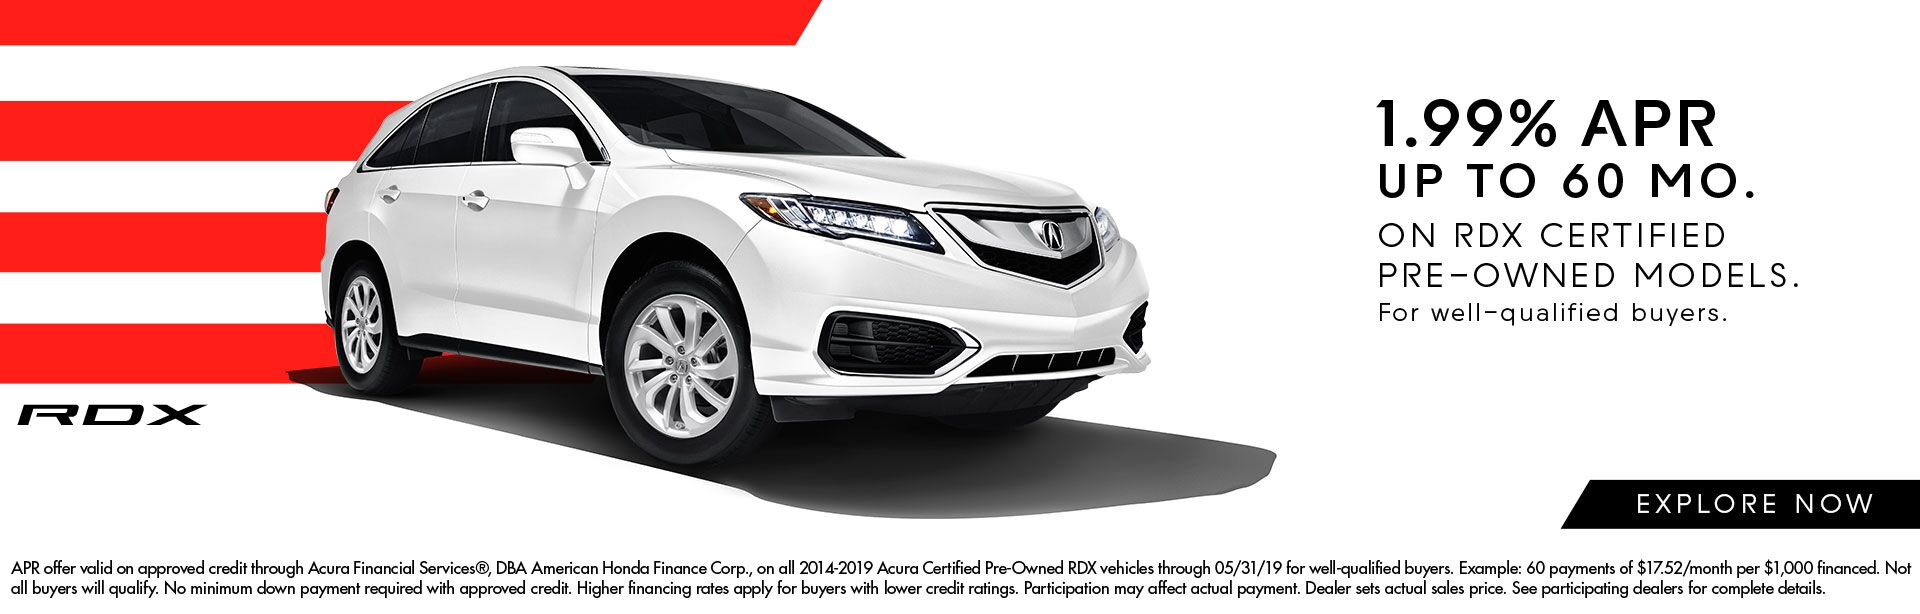 1.99% APR Incentives on Certified RDX at Motorcars Acura